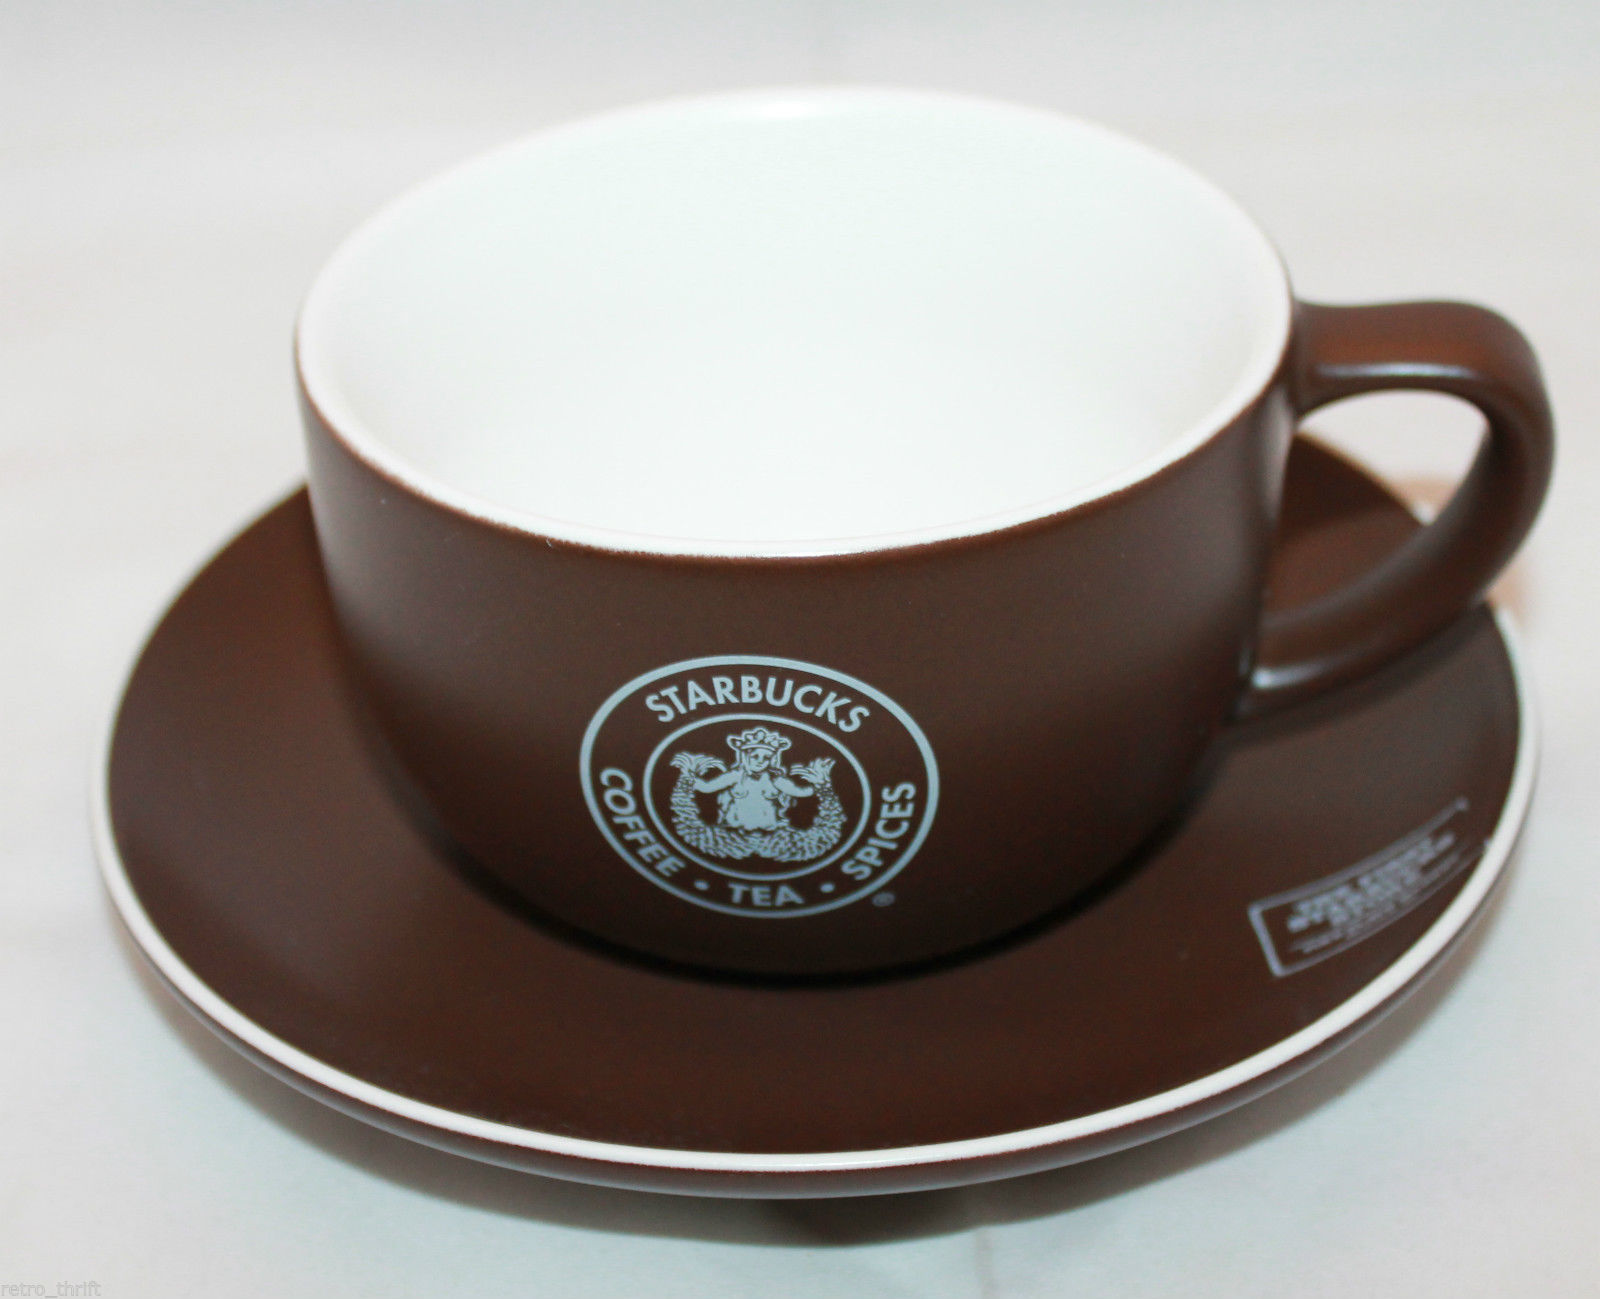 Primary image for 2008 Starbucks Coffee Pike Place Market Brown  Mug Cup Saucer Set  AS-IS